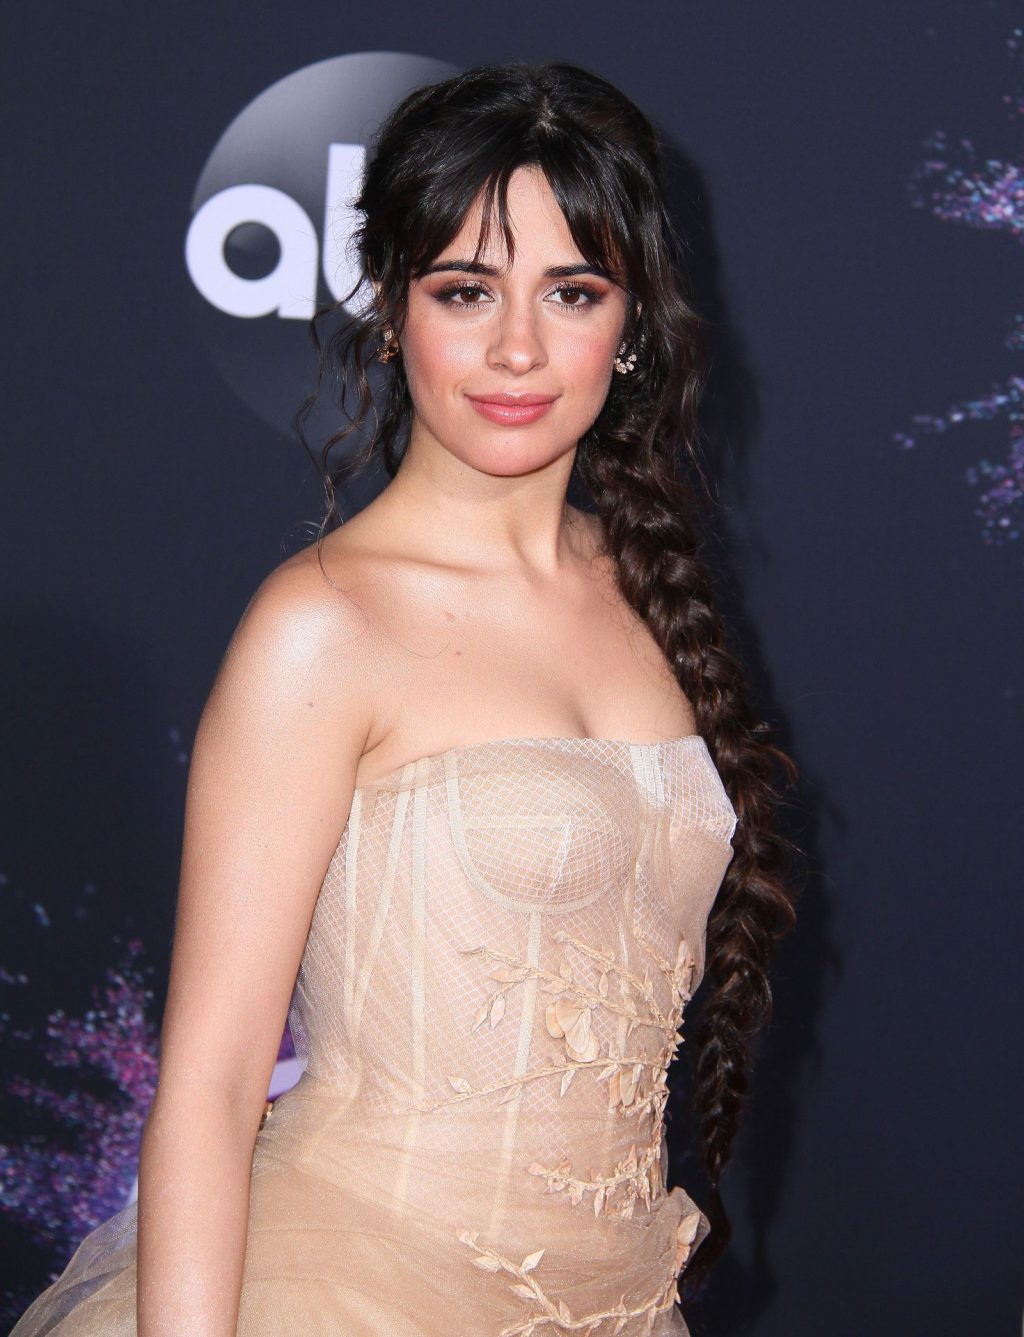 Camila Cabello Sexy (105 Photos)